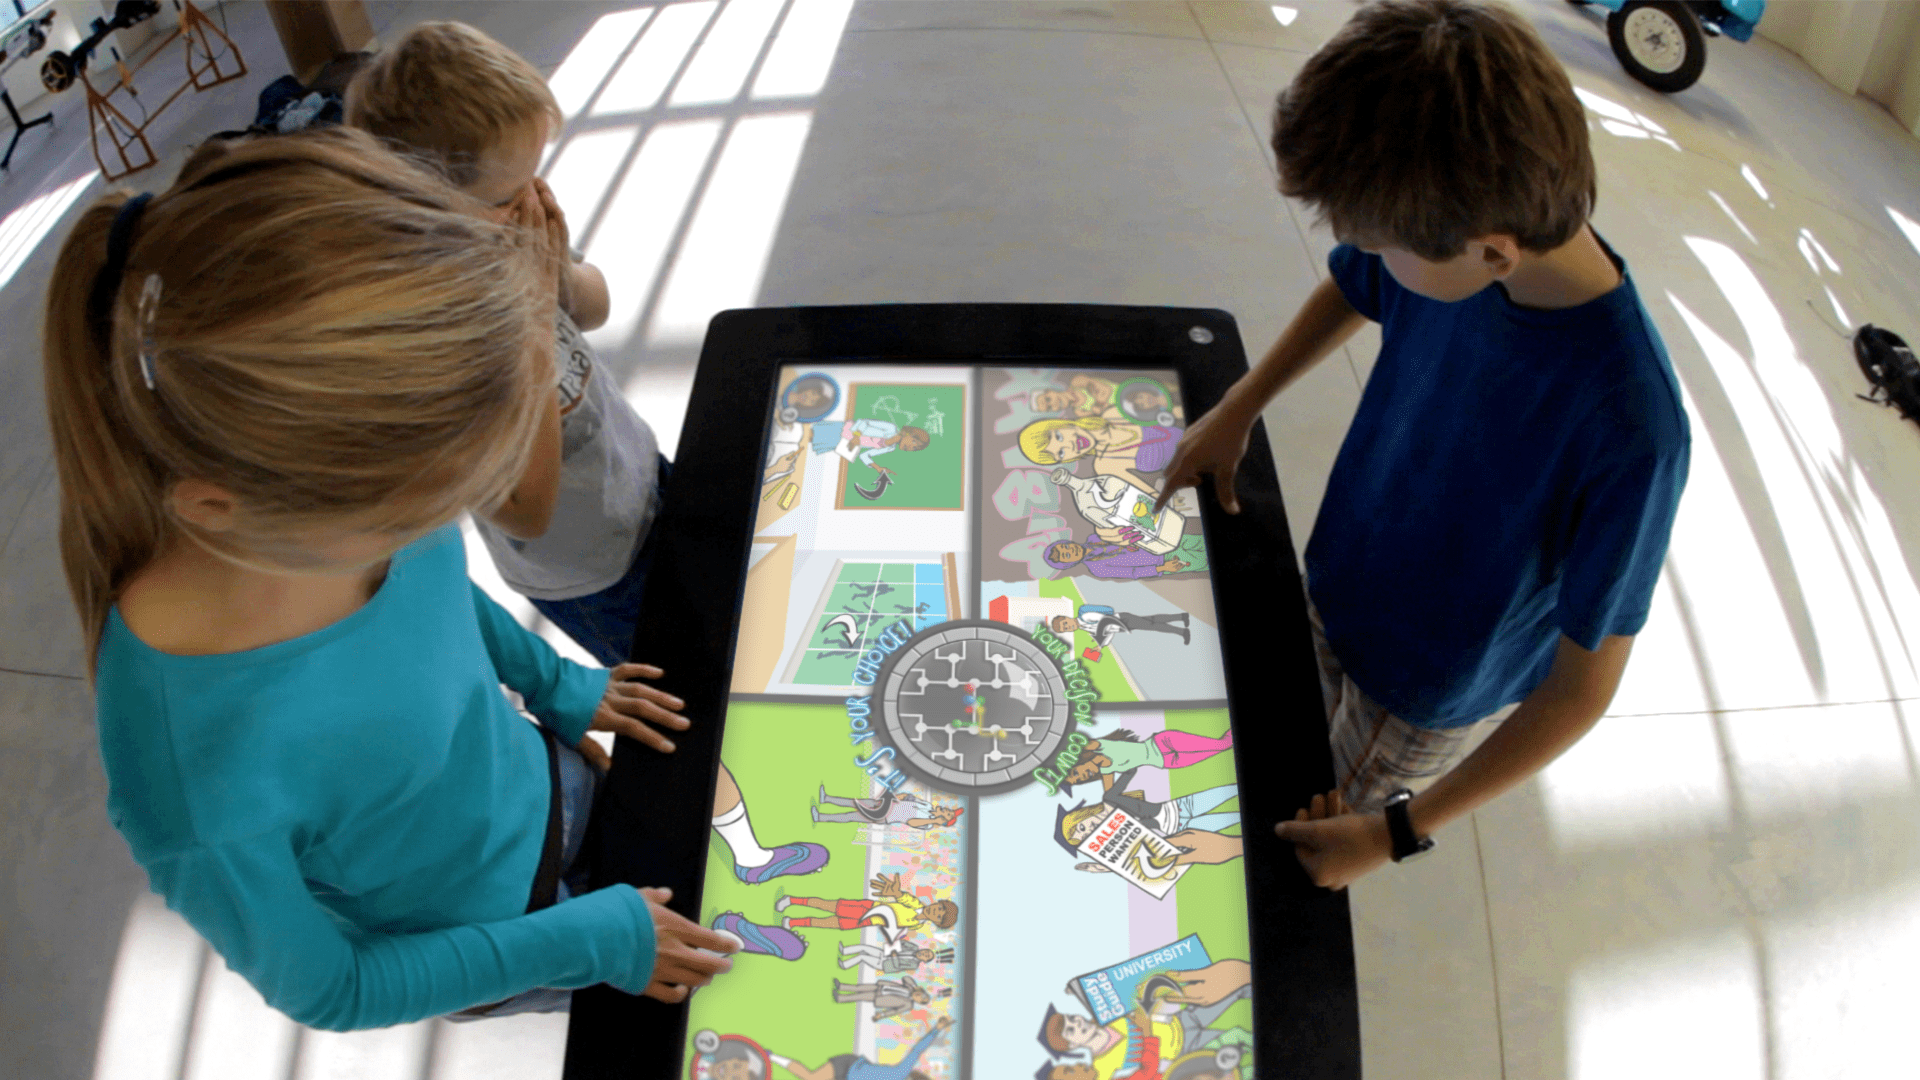 The Eco Choices Educational Game was created by Formula D interactive